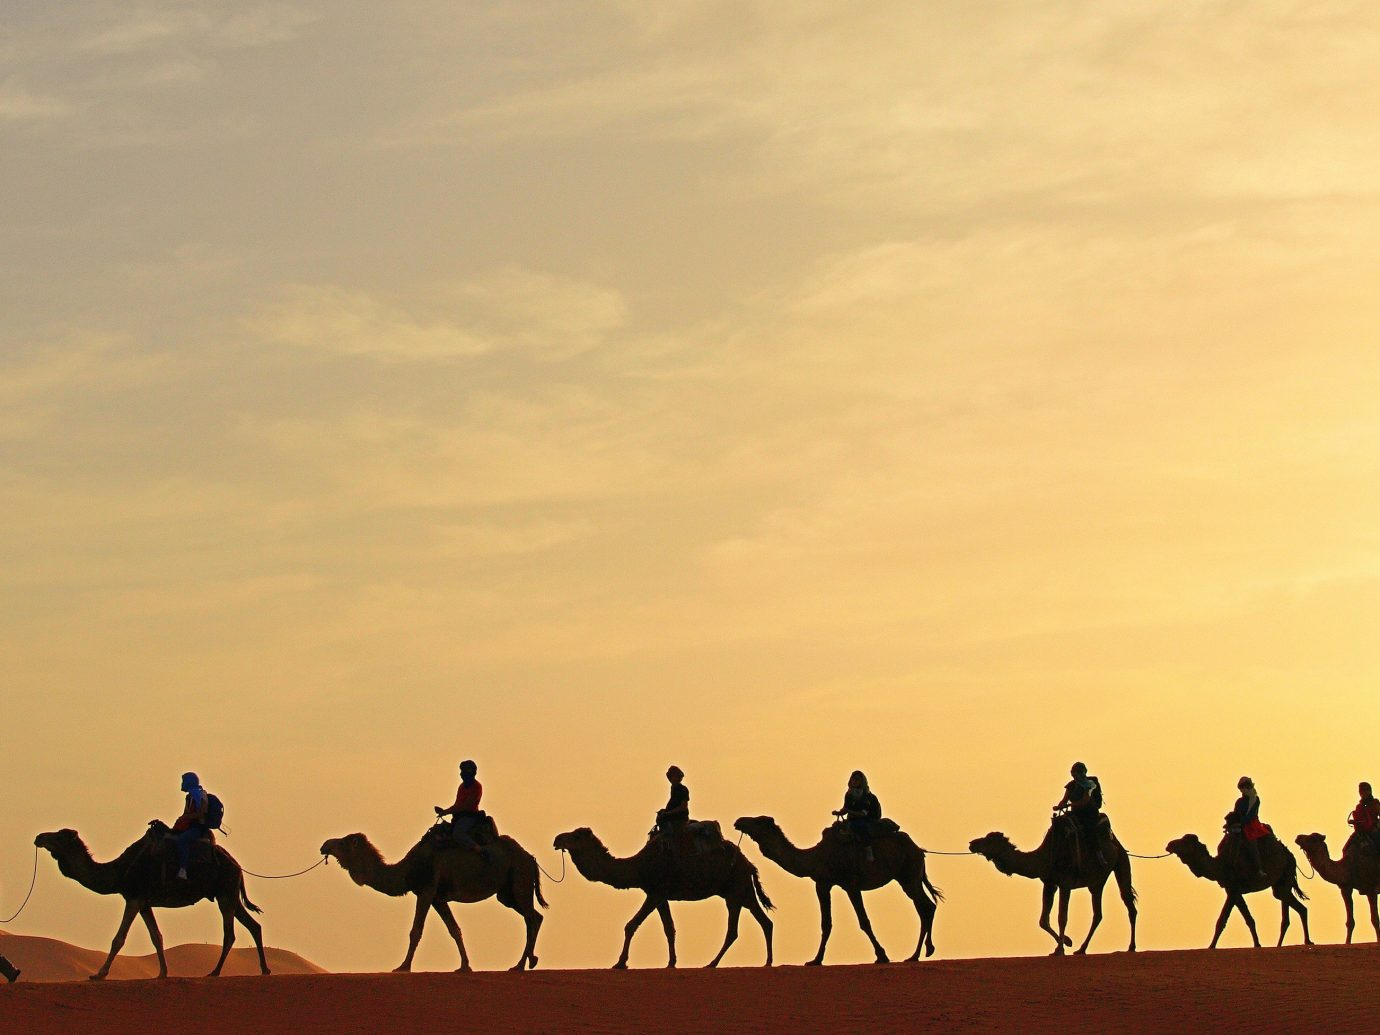 Hotels outdoor Camel natural environment people group Desert sahara camel like mammal landscape plain mustang horse steppe aeolian landform savanna prairie camel racing line horse